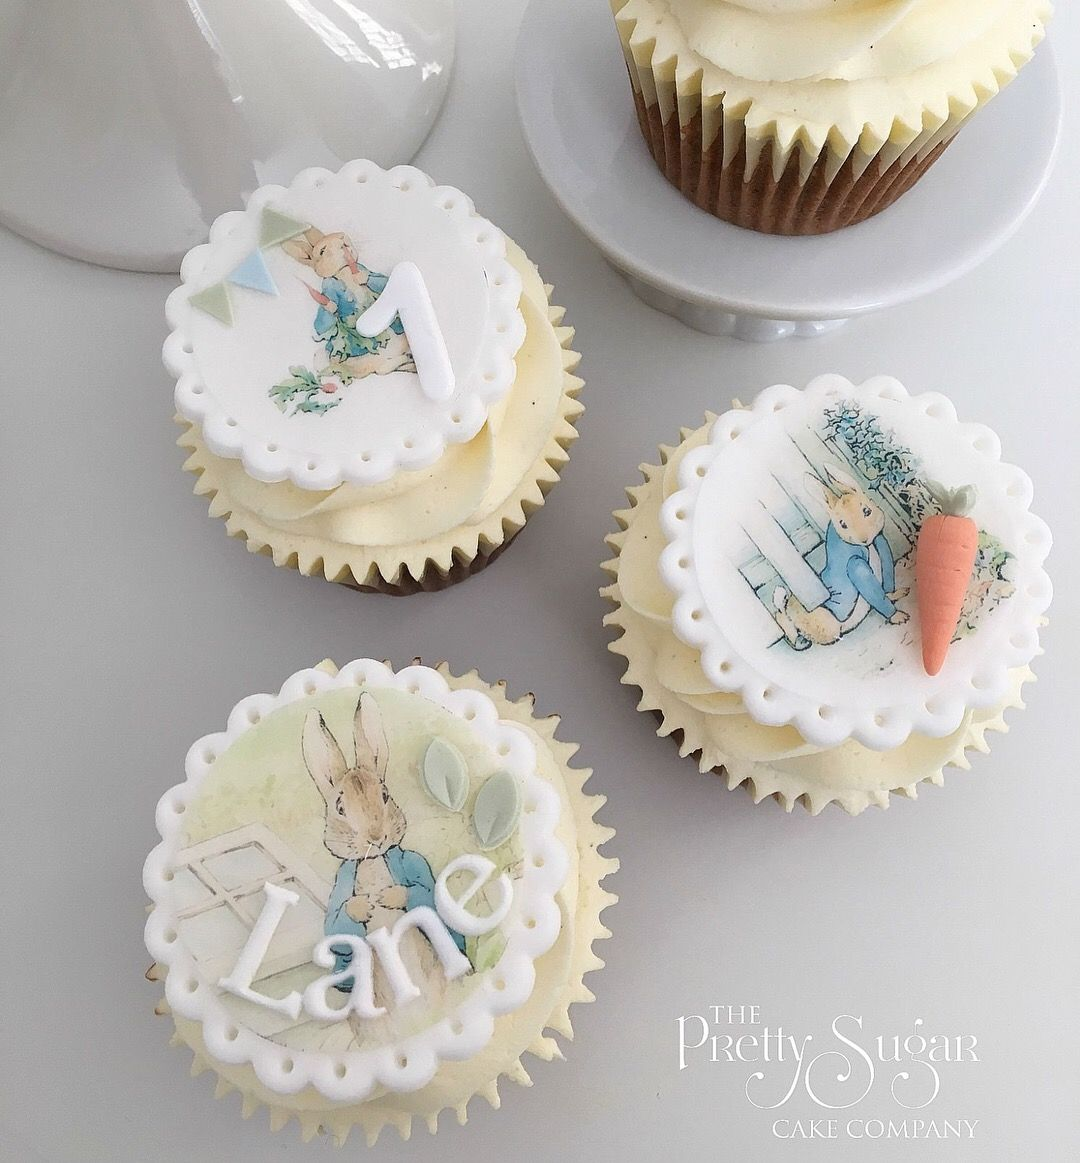 90 PRE-CUT EDIBLE WAFER CUP CAKE CAKE TOPPERS PERSONALISED BAPTISM CHRISTENING